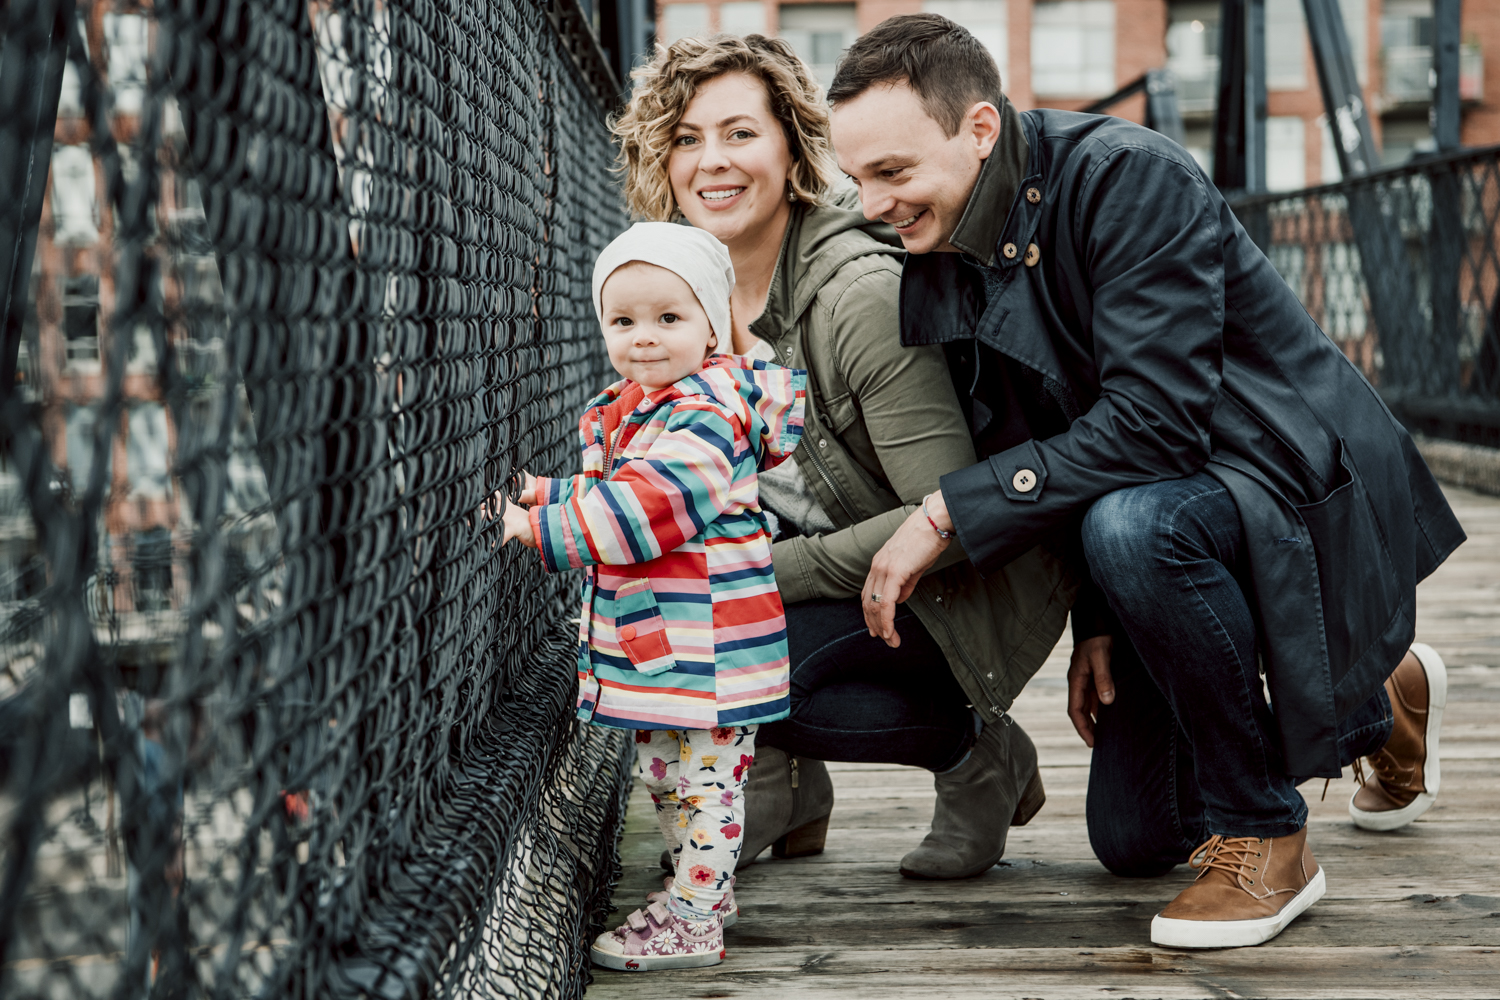 family portraits on a familiar stroll through the neighbourhood, Toronto. 2019